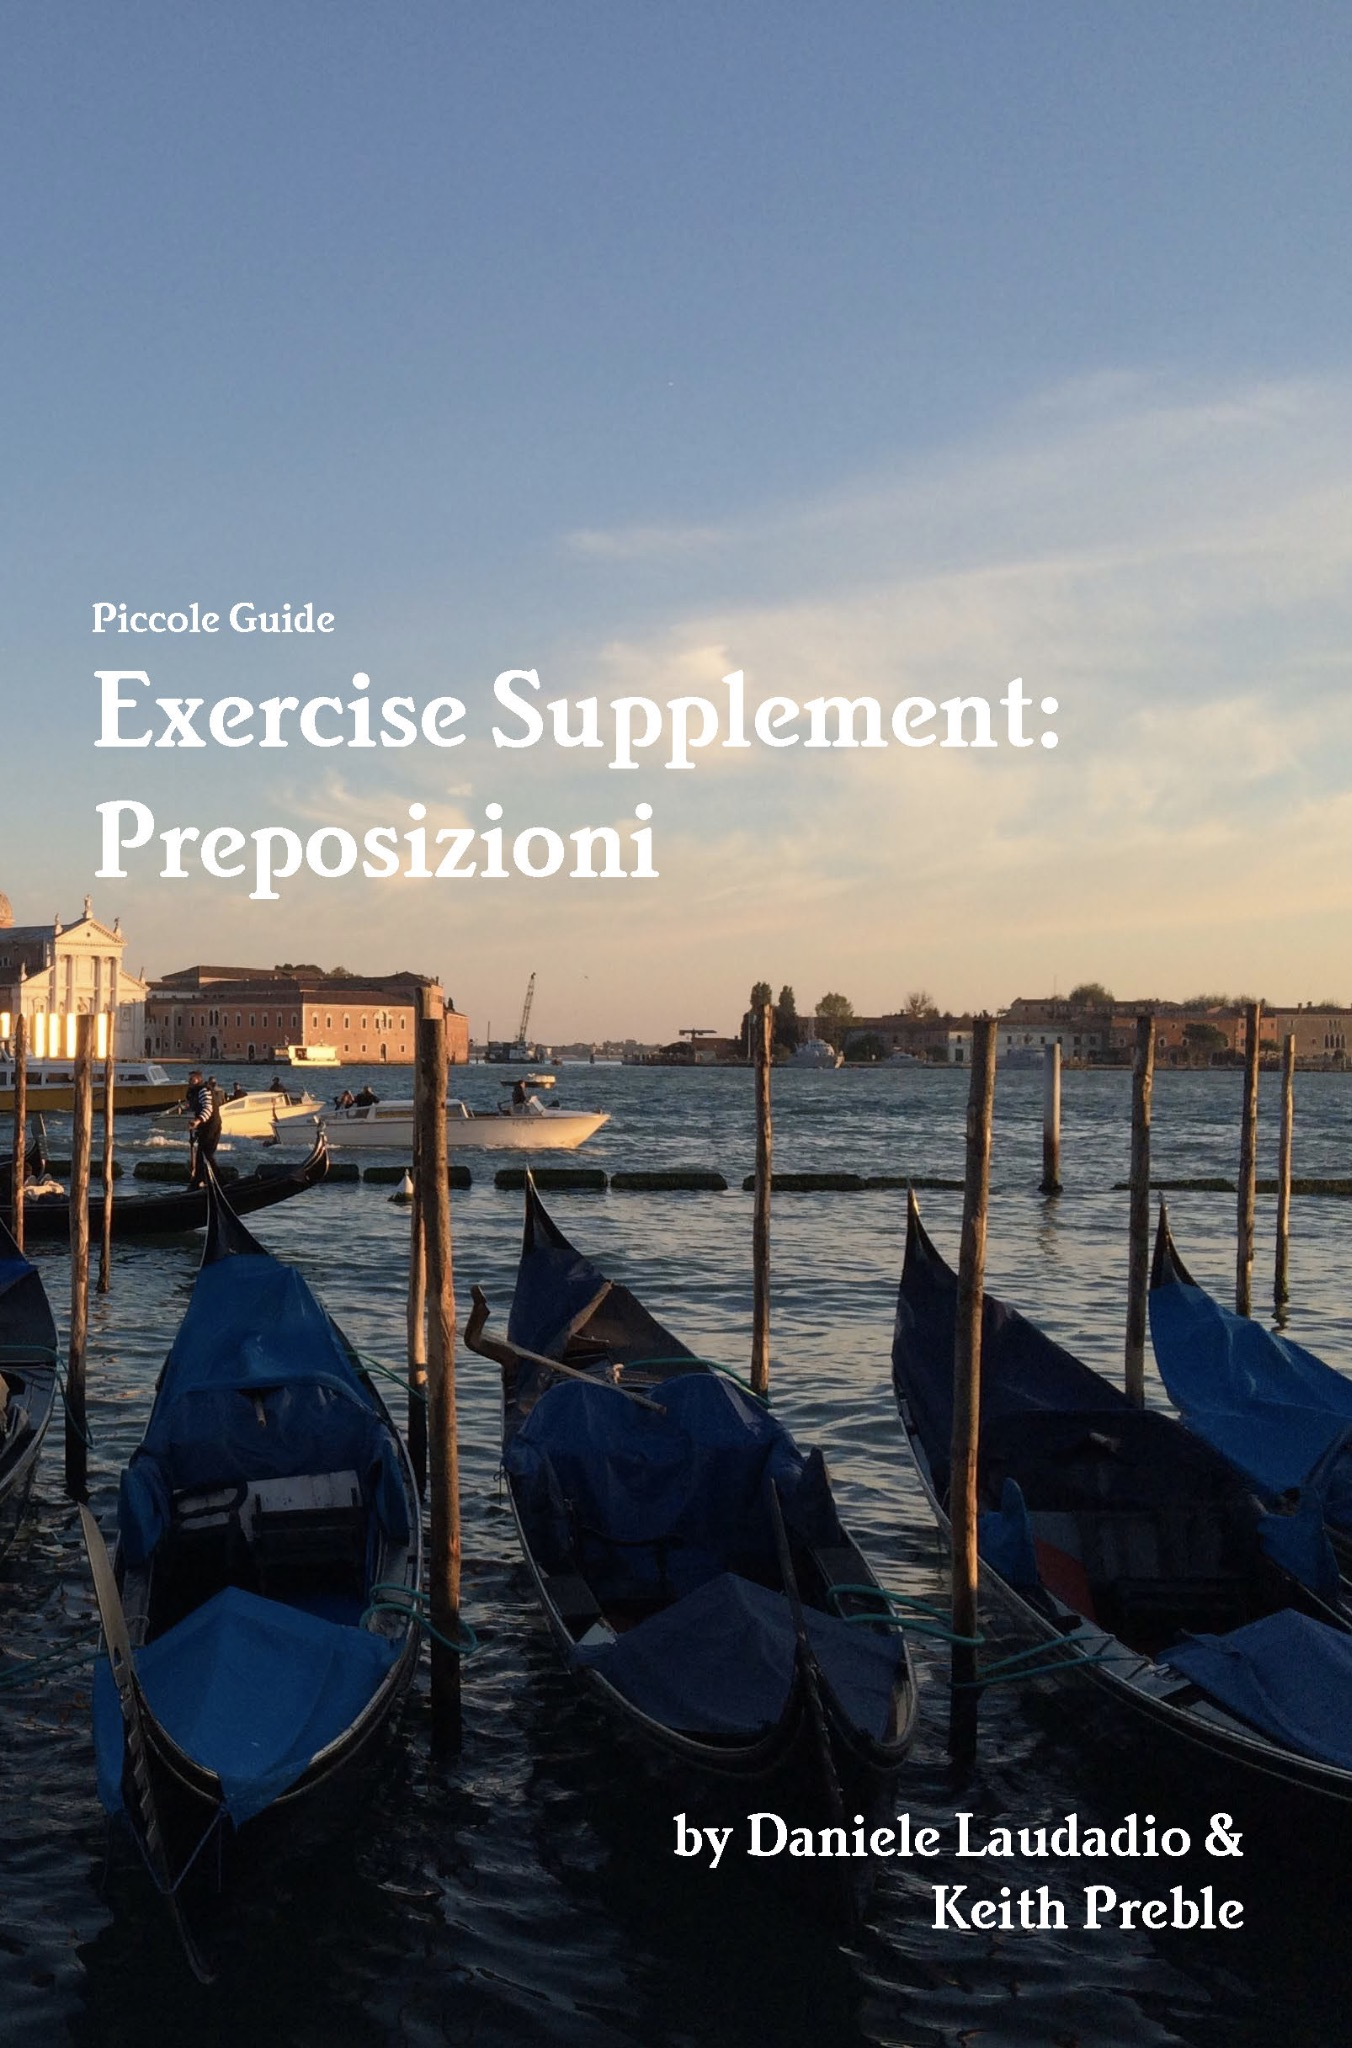 Piccole Guide (Volume 1): Prepositions (with exercise supplement)